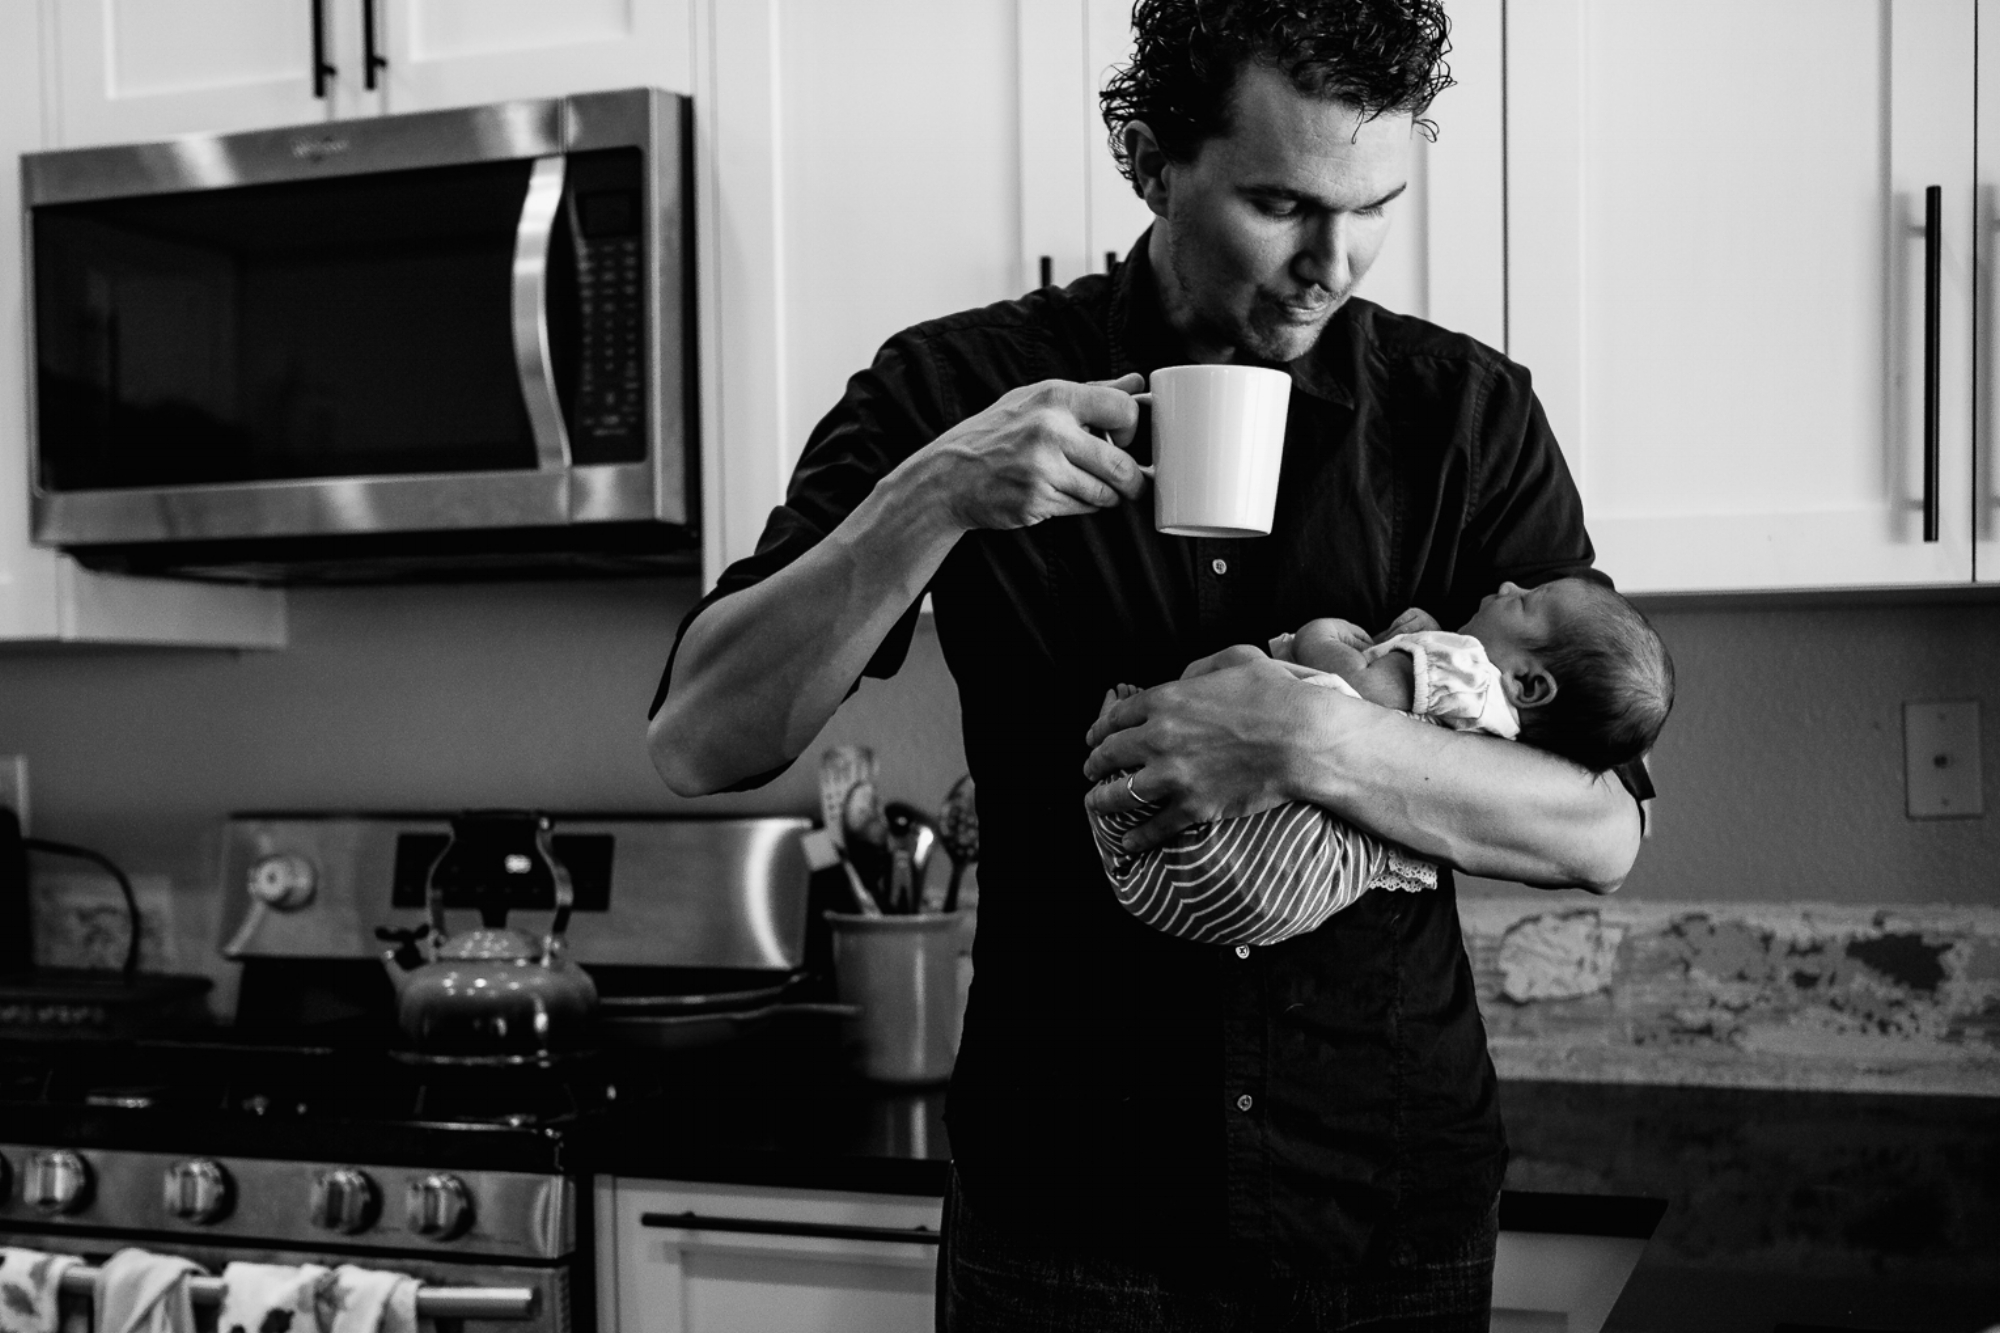 A father gets used to life with his newborn.